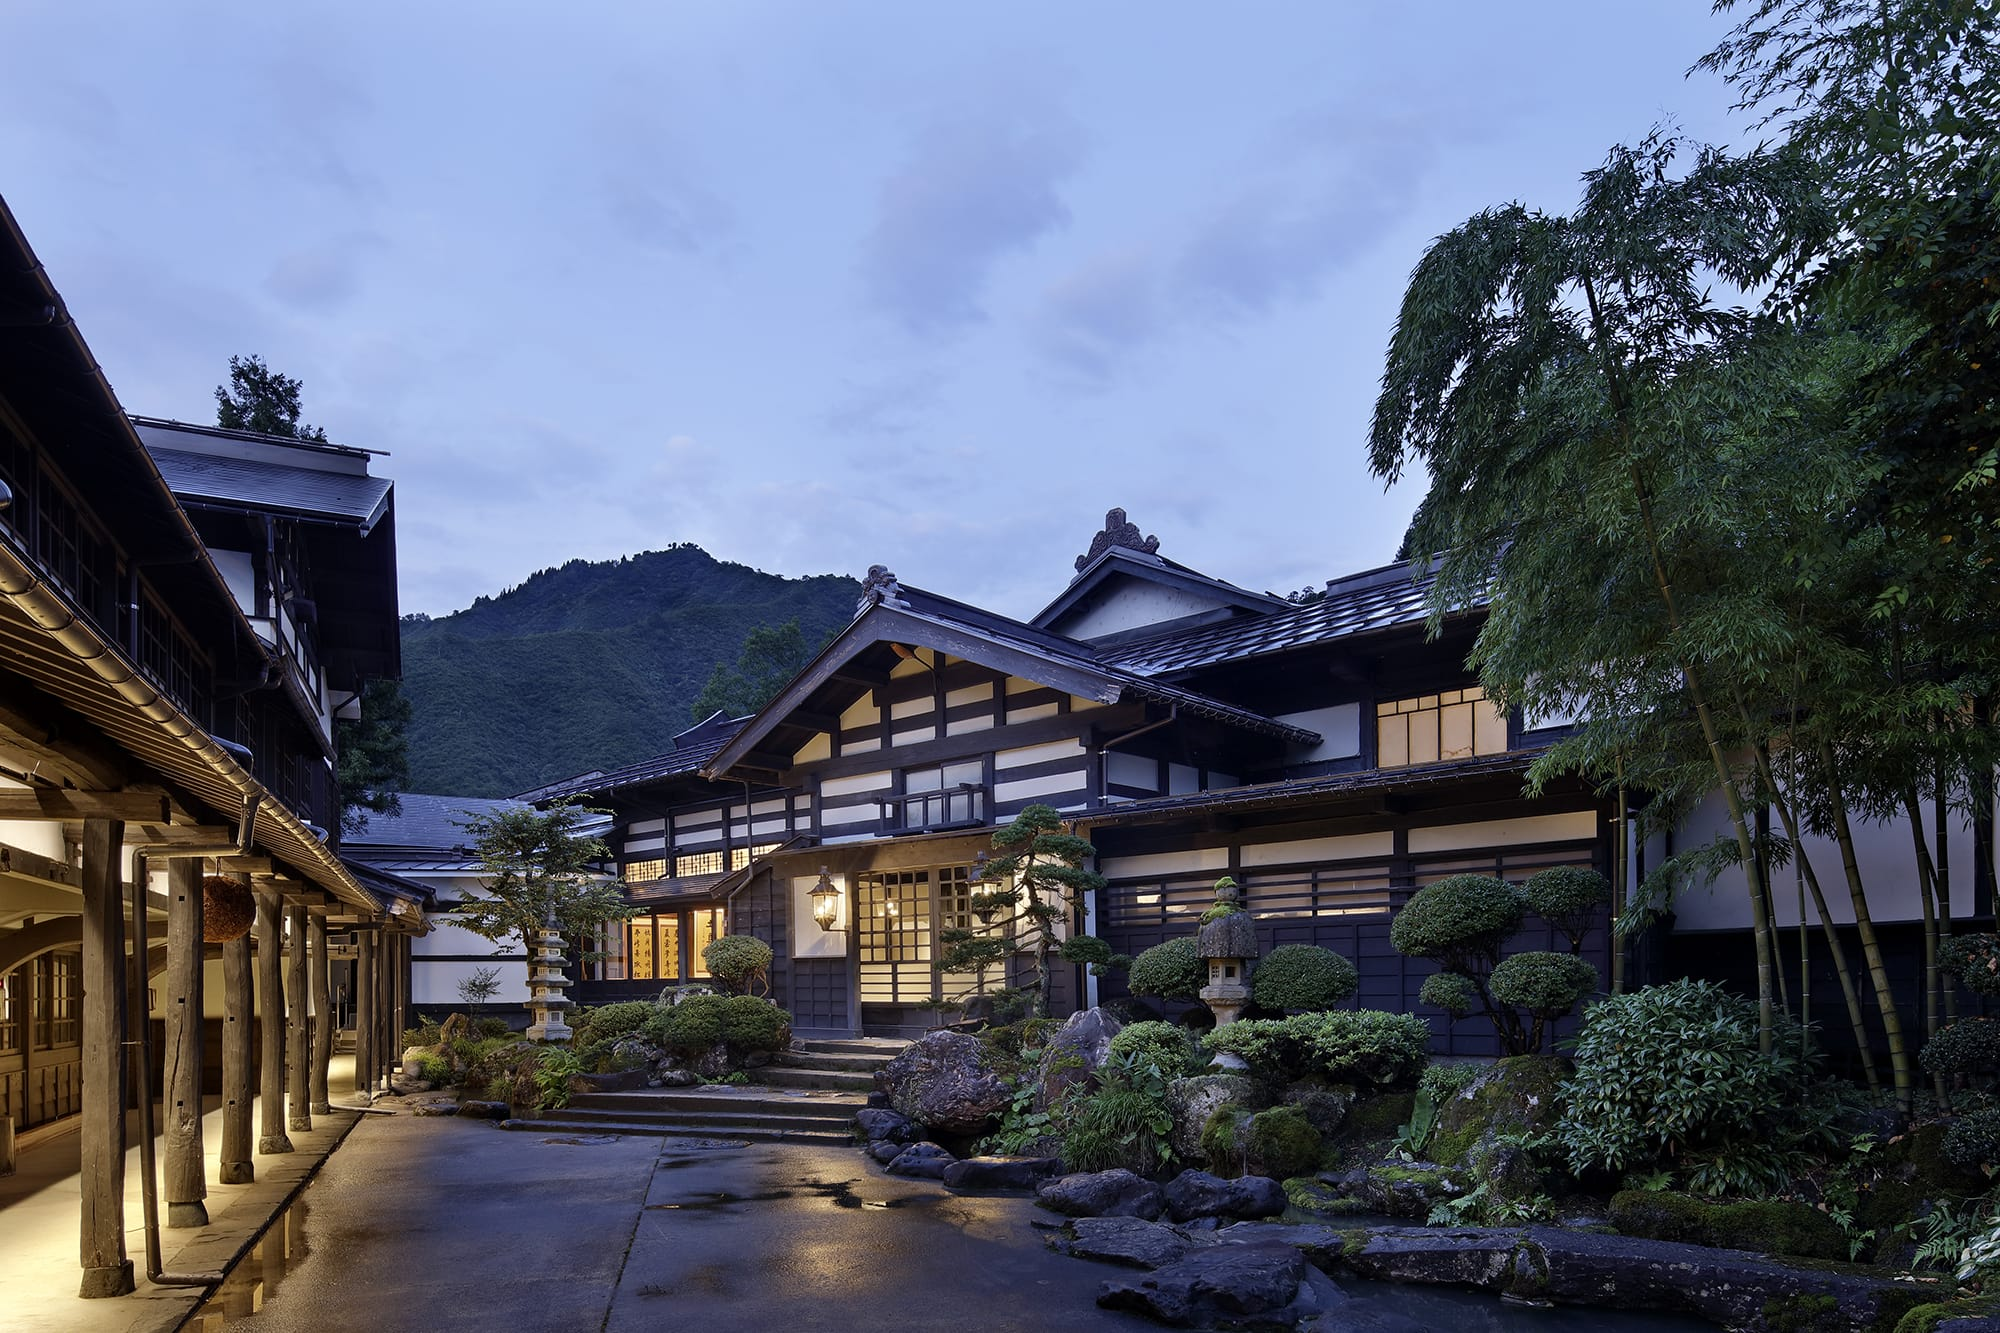 Onsen Oyado Ryugon, the long-established onsen inn that has been designated as a cultural property has reopened after renovation using 8 traditional Japanese houses from the area, including a residence of a great landowner.